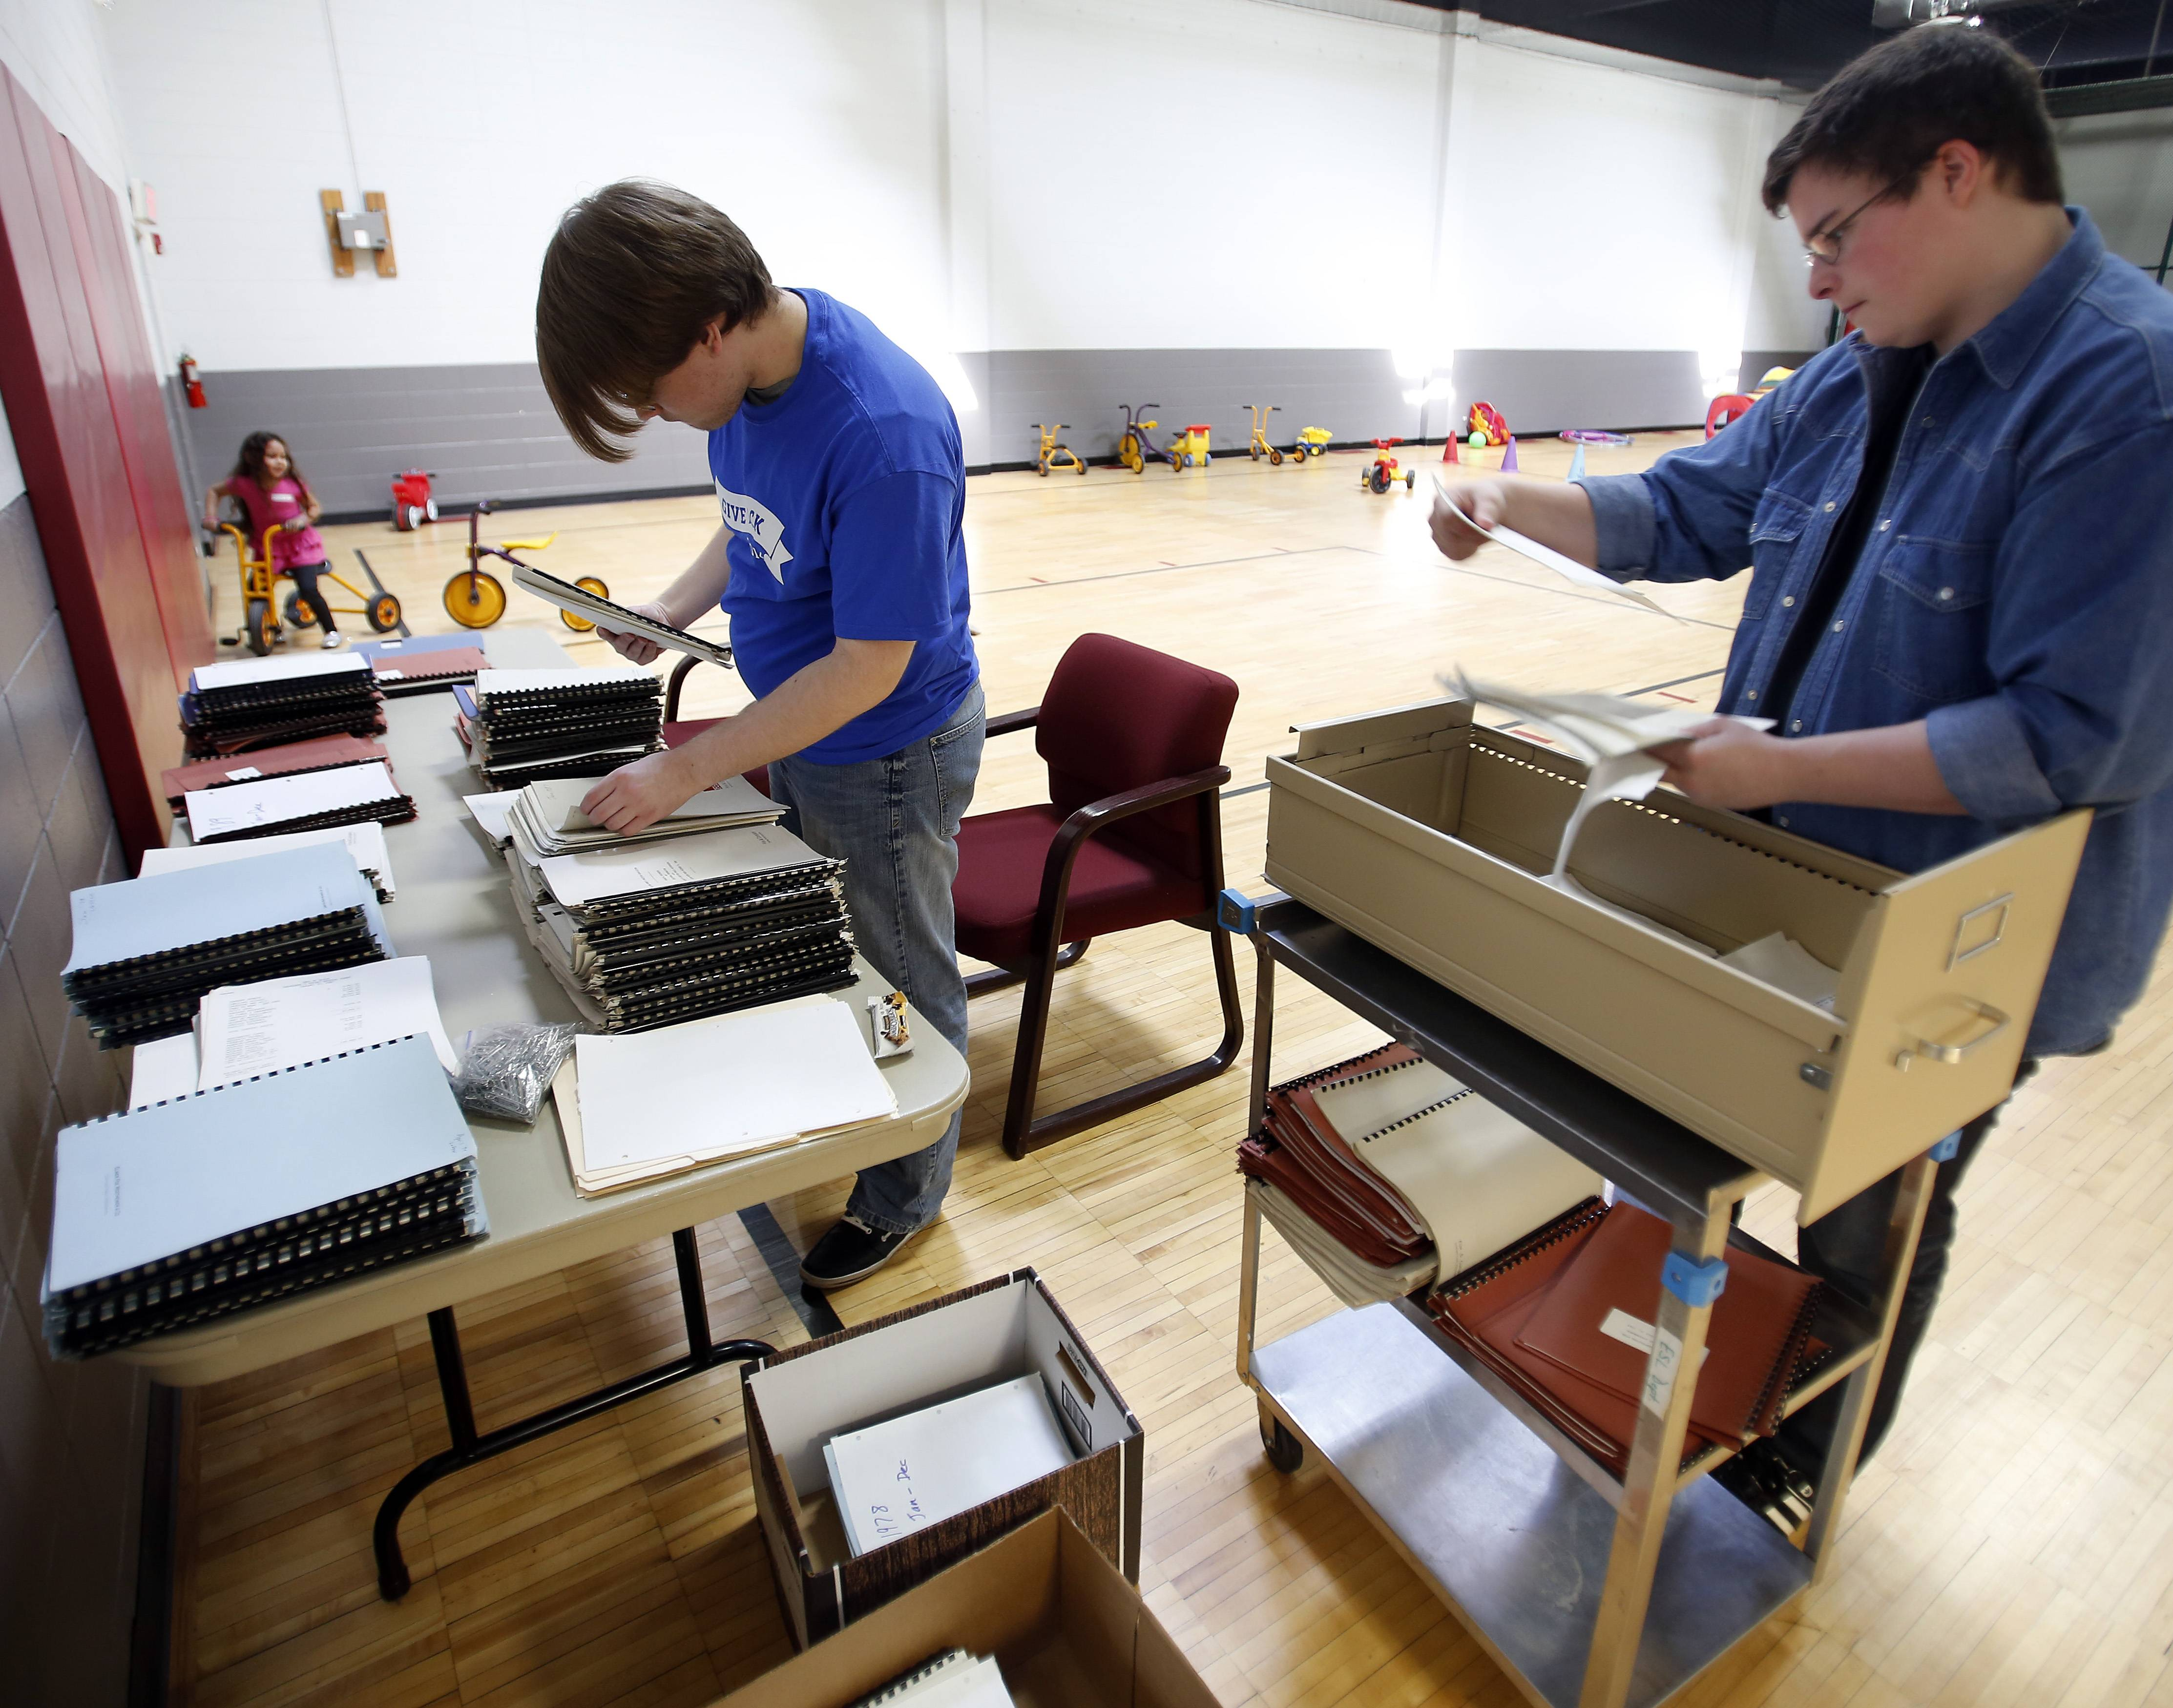 Student David Loske, 16, and Tim Daugaard, 23, a volunteer chaperon, sort records to prepare them to be scanned Thursday at the Elgin YWCA. They were part of a group from Westminster Christian School in Elgin who were giving back to the community. More than 350 students, teachers, and volunteers worked at 20 locations during the second annual Give Back Day.